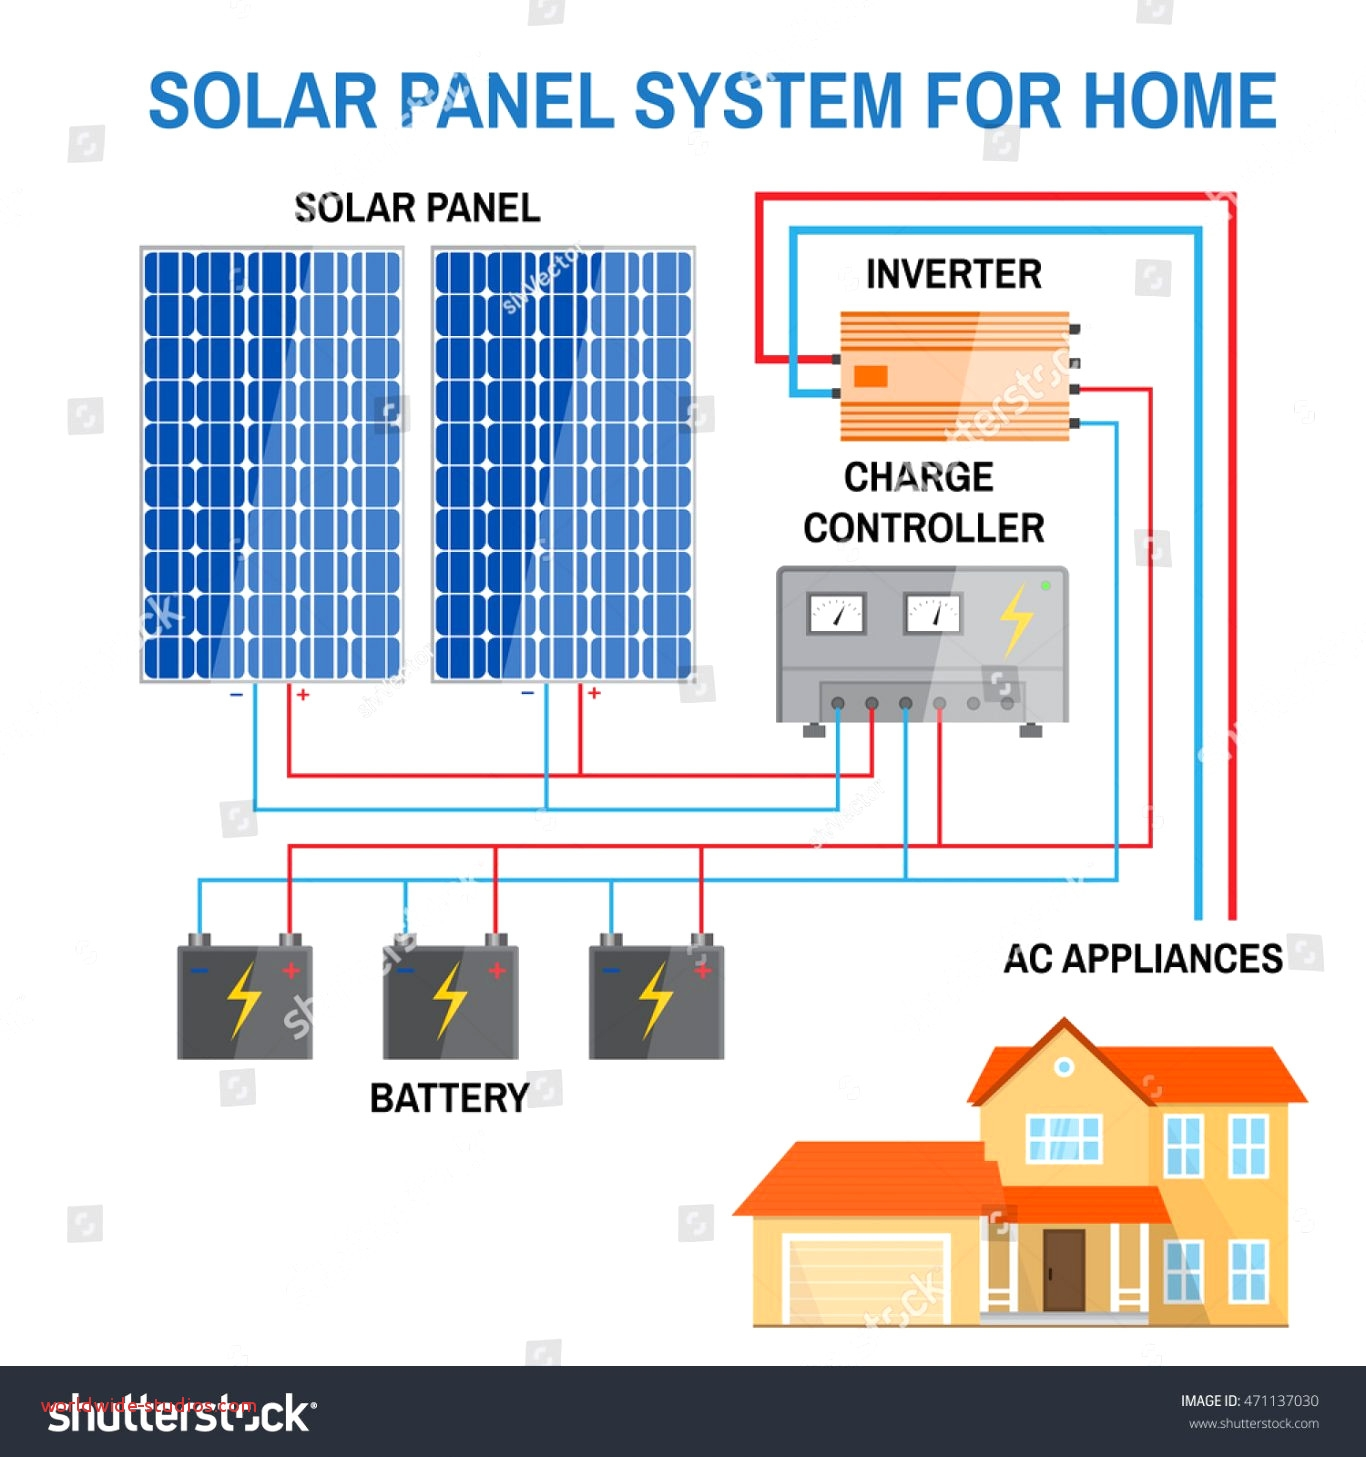 solar power wiring diagram parallel solar power wiring schematic solar panel grid tie wiring diagram | free wiring diagram #10